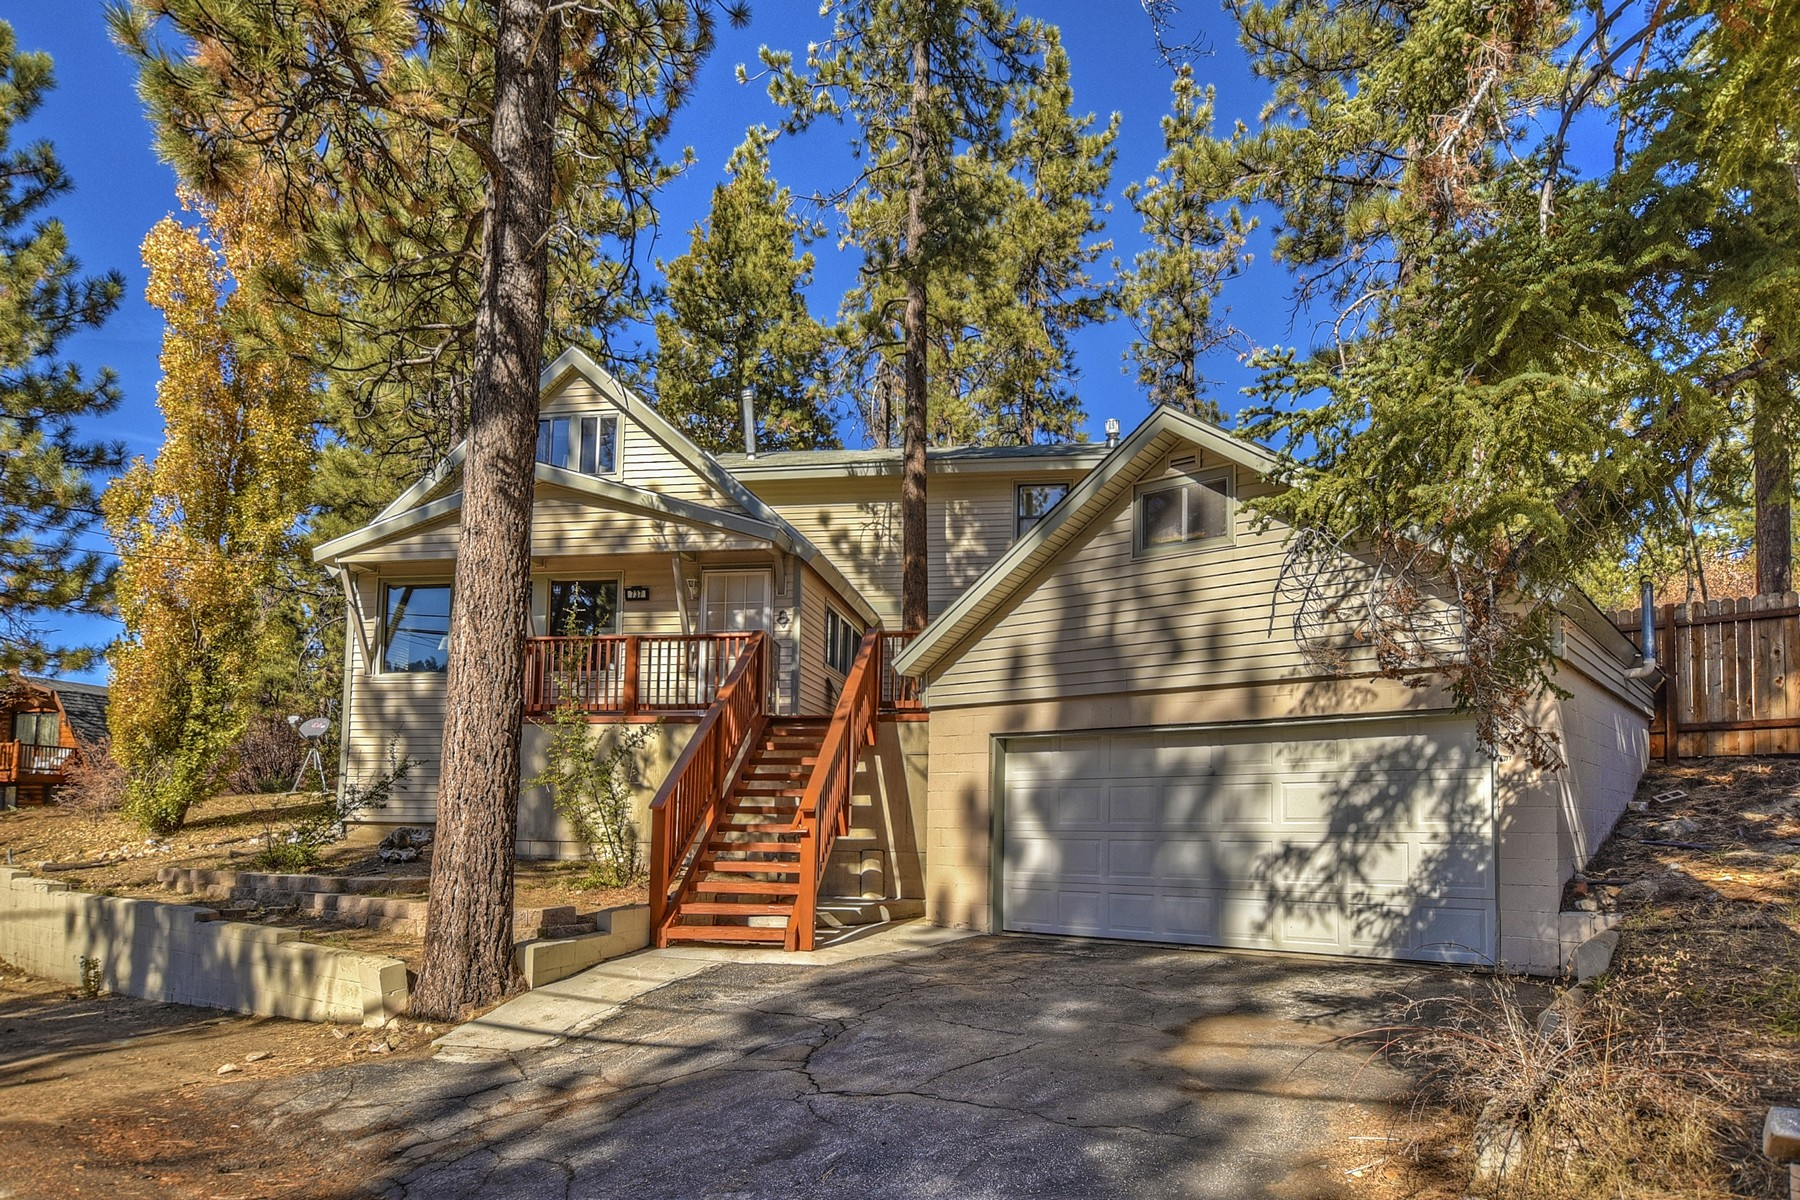 Single Family Homes for Sale at 737 Silver Tip Drive, Big Bear Lake, California, 92315 737 Silver Tip Drive Big Bear Lake, California 92315 United States